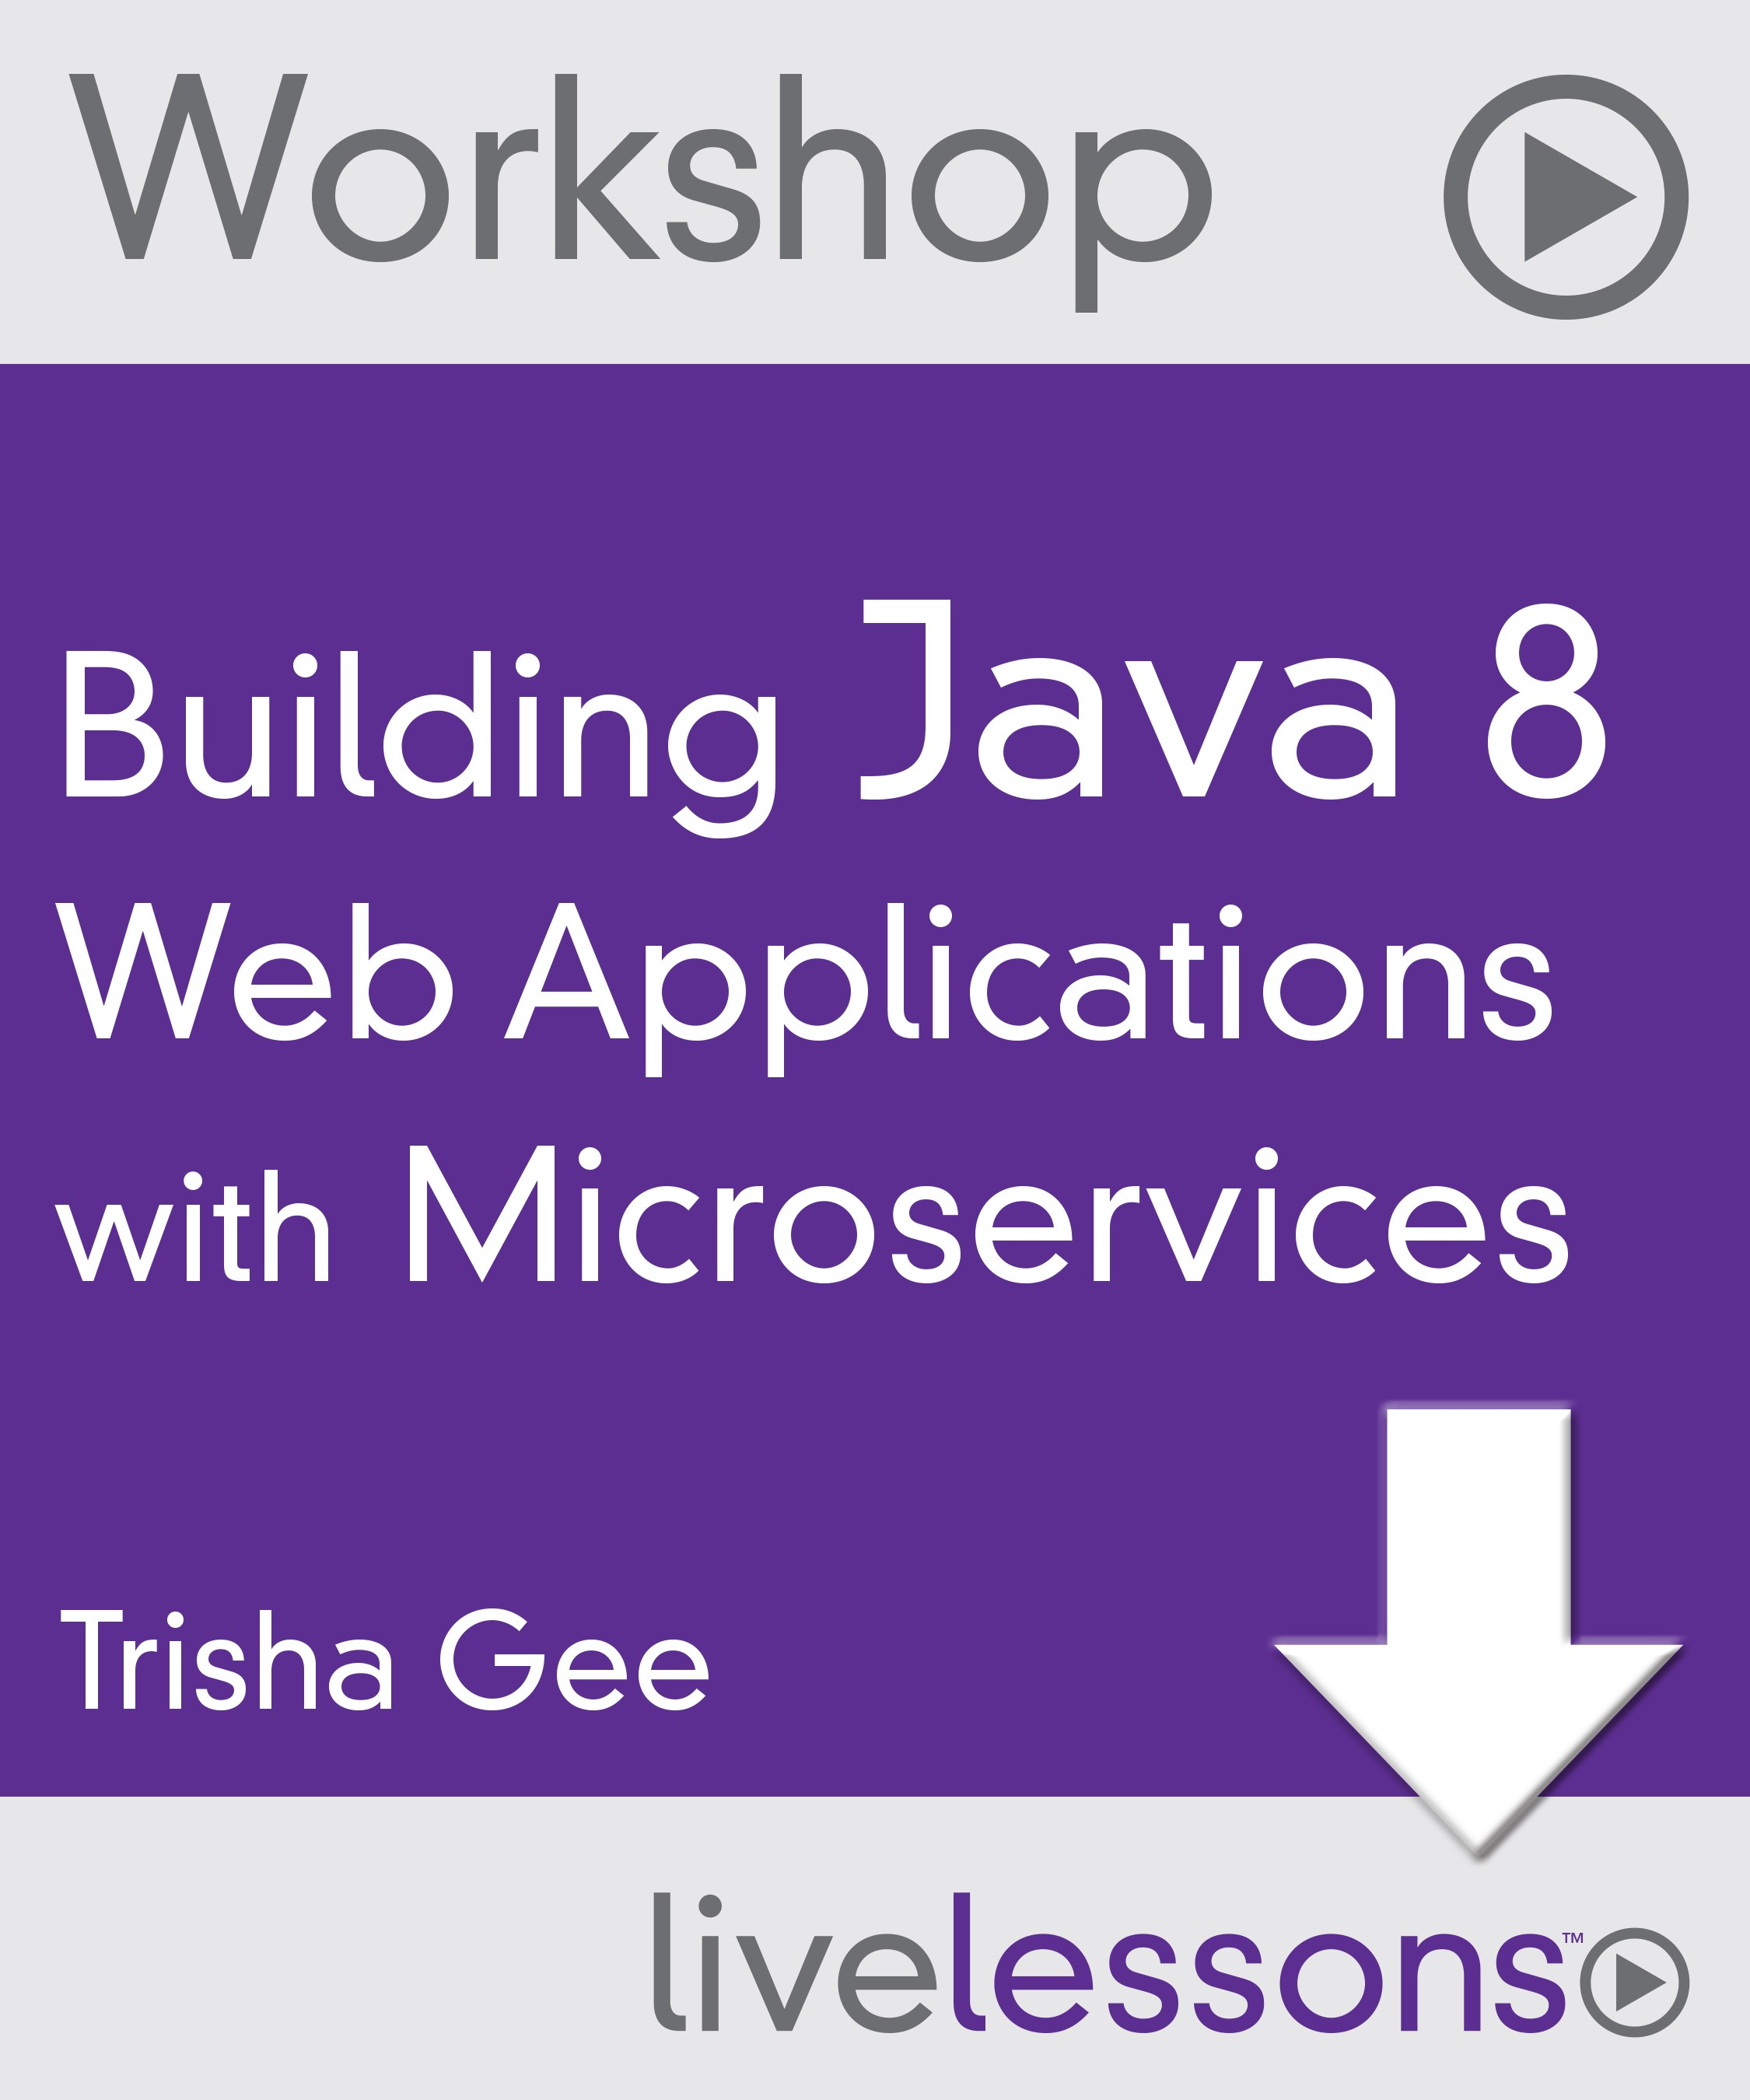 Building Java 8 Web Applications with Microservices (Workshop), LiveLesssons, Downloadable Video